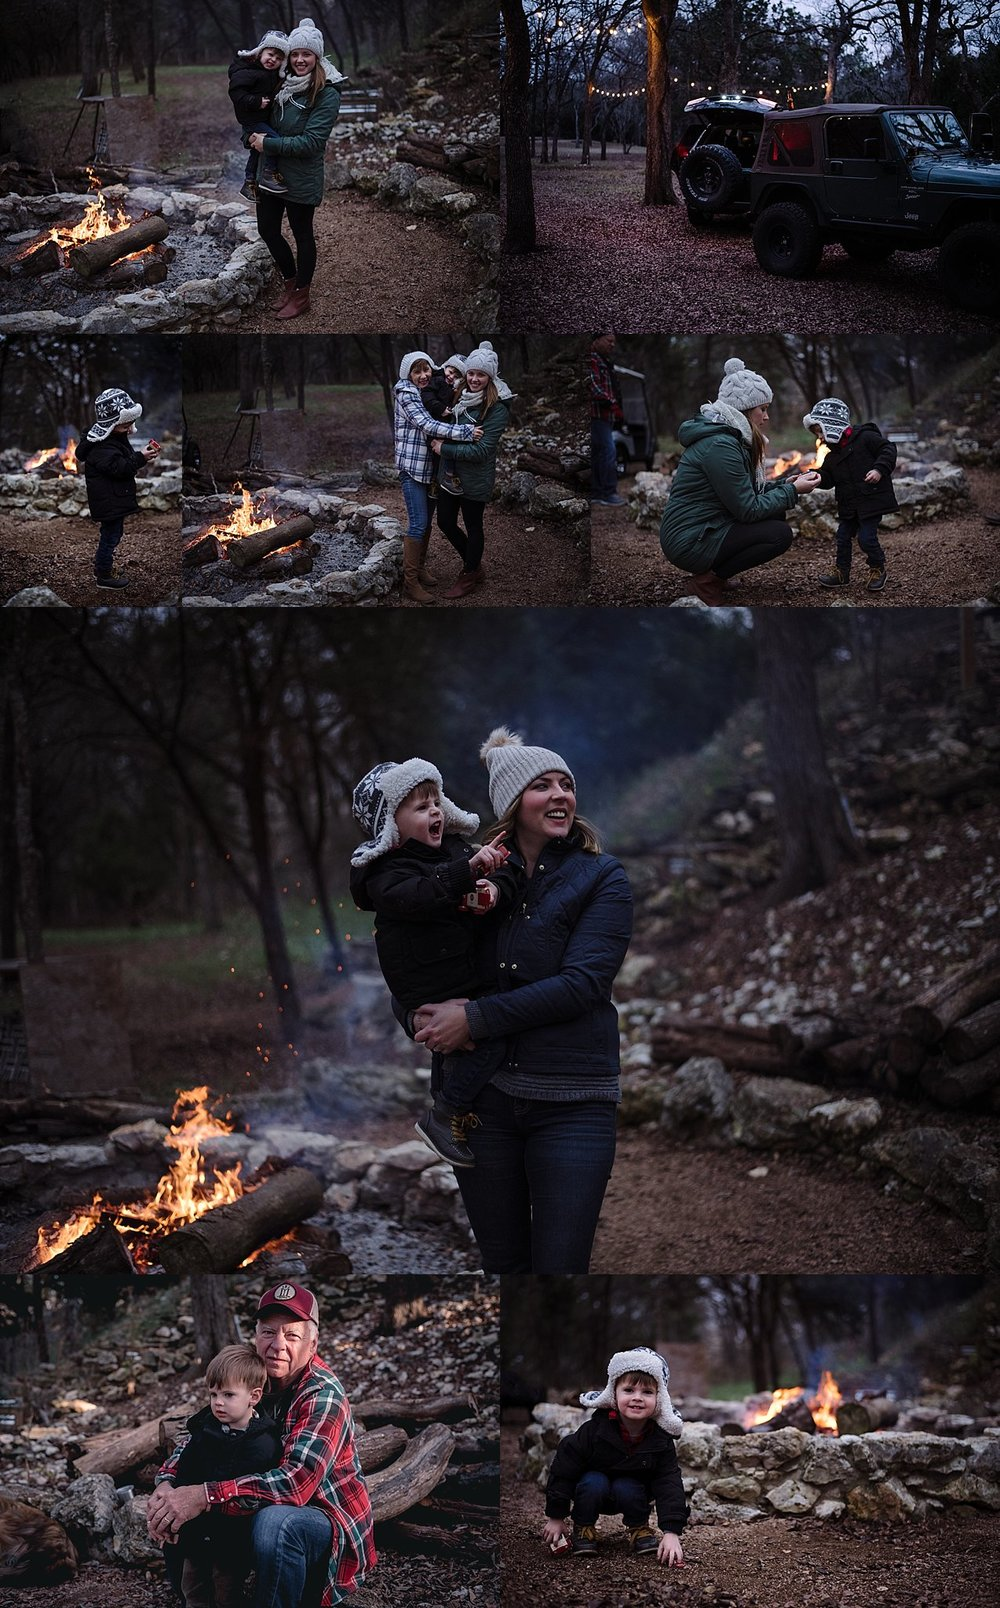 Pictures from our time last week with family in Texas. Some of my greatest memories are with my family around the fire. Whenever we're reunited I guarantee you will find us all gathered around our families fire pit. I loved capturing Levi playing around the fire and enjoying something I cherish so much.